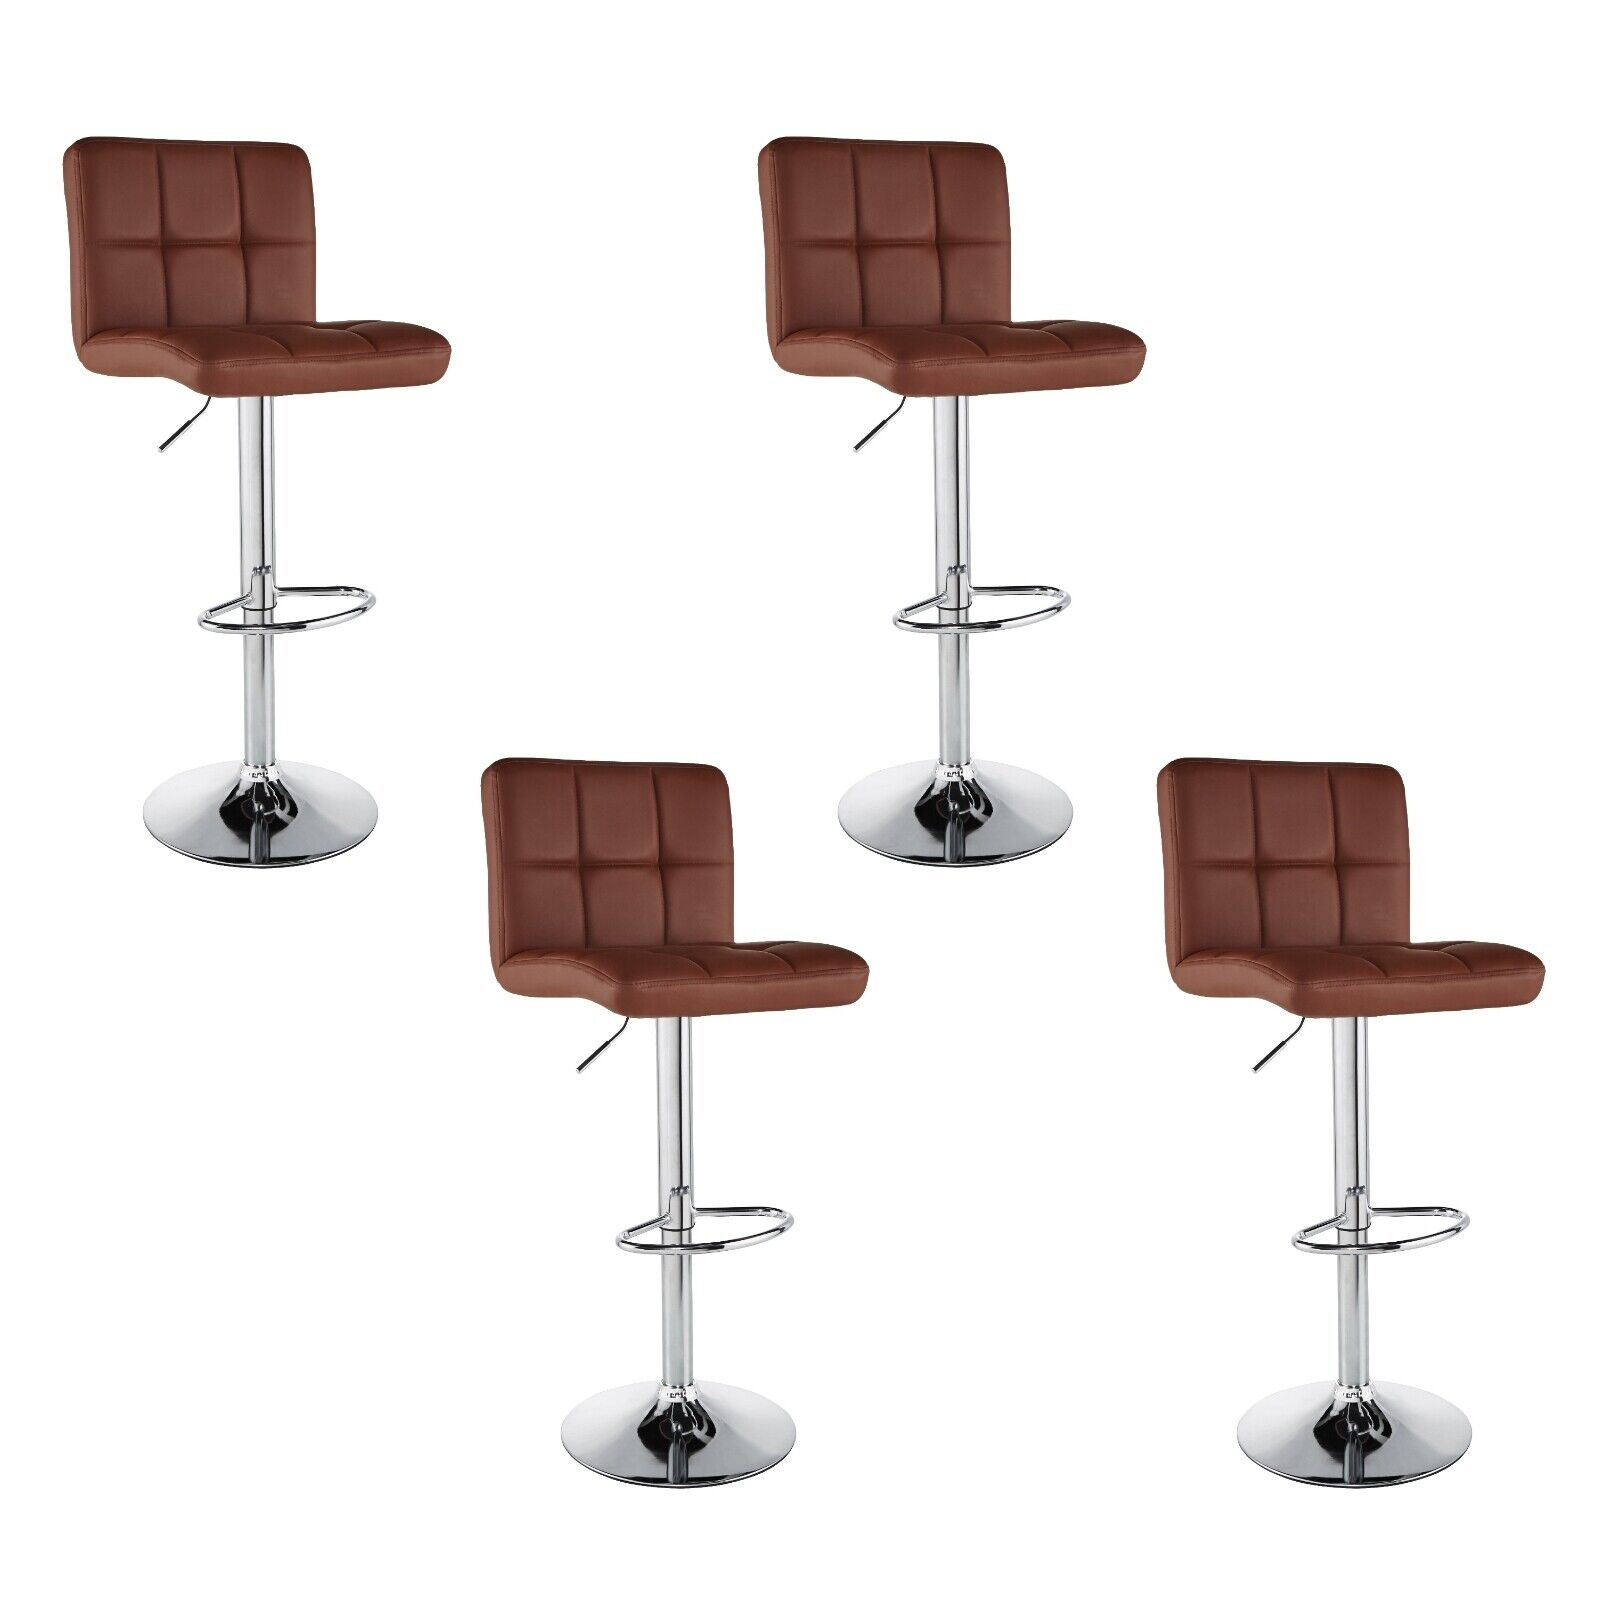 Awesome Set Of 4 Counter Height Pu Leather Bar Stools Adjustable Swivel Pub Chairs Brown Pdpeps Interior Chair Design Pdpepsorg